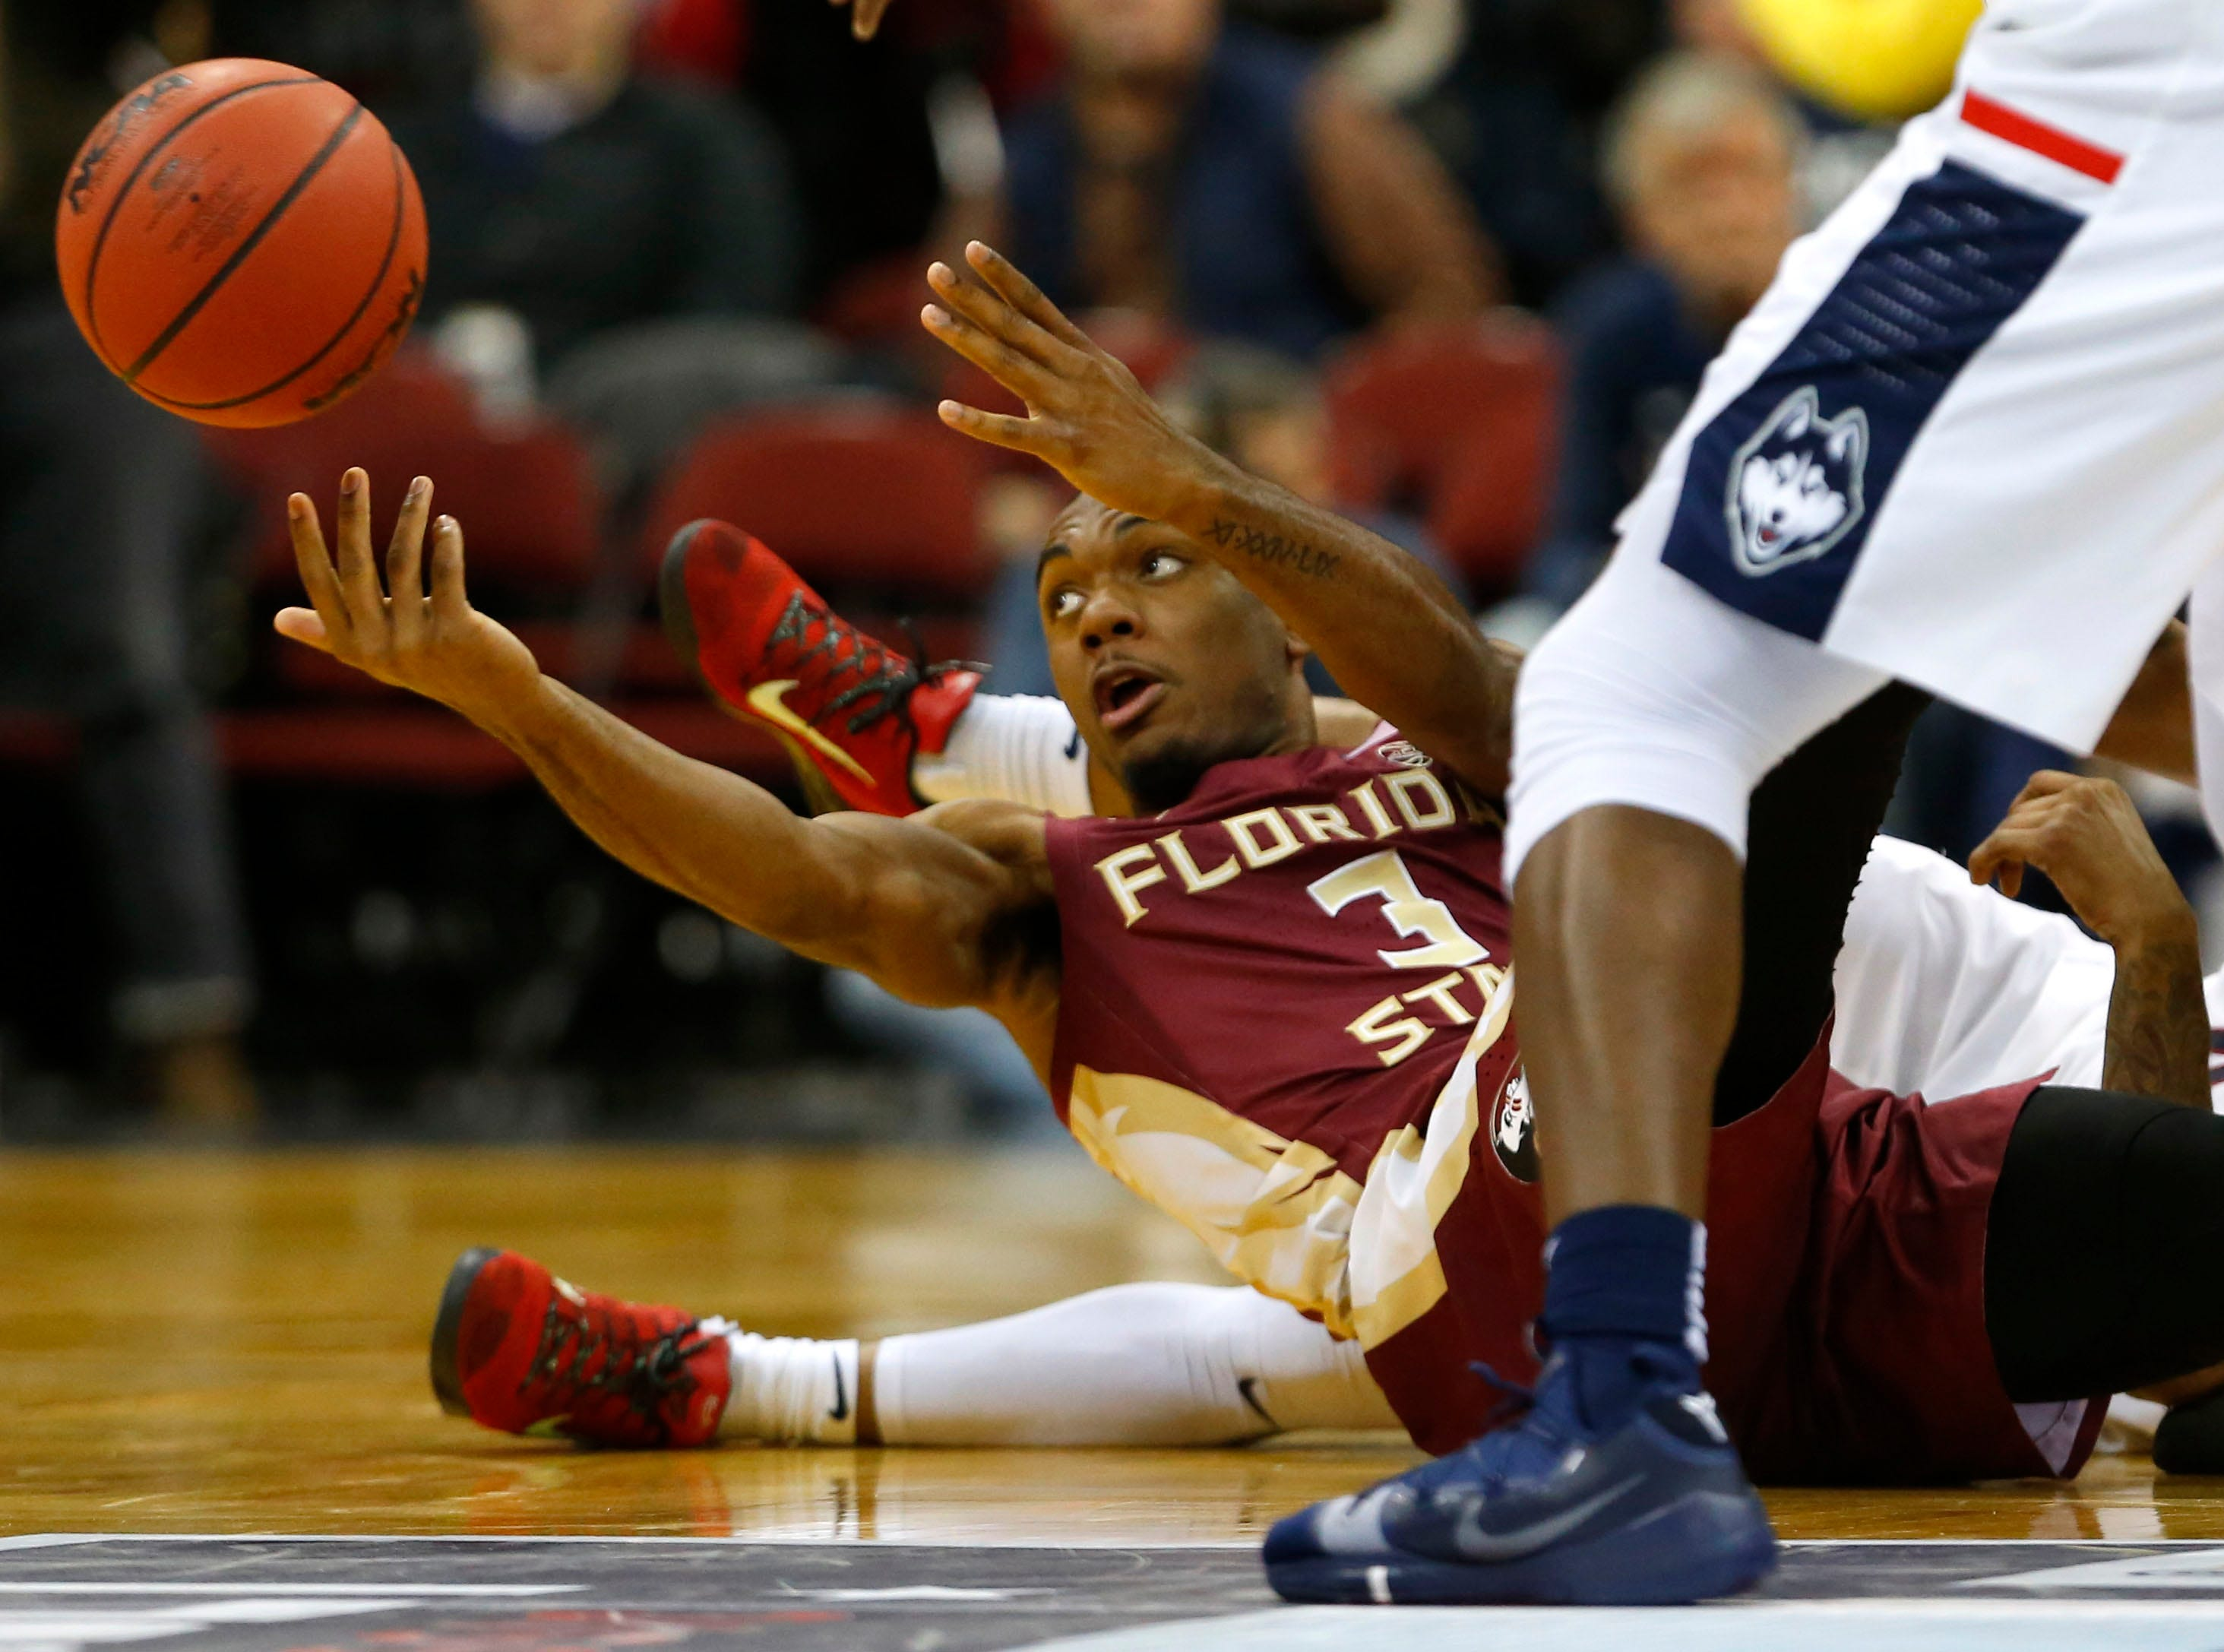 Dec 8, 2018; Newark, NJ, USA; Florida State Seminoles guard Trent Forrest (3) passes a loose ball away from Connecticut Huskies defenders during the first half at Prudential Center. Mandatory Credit: Noah K. Murray-USA TODAY Sports